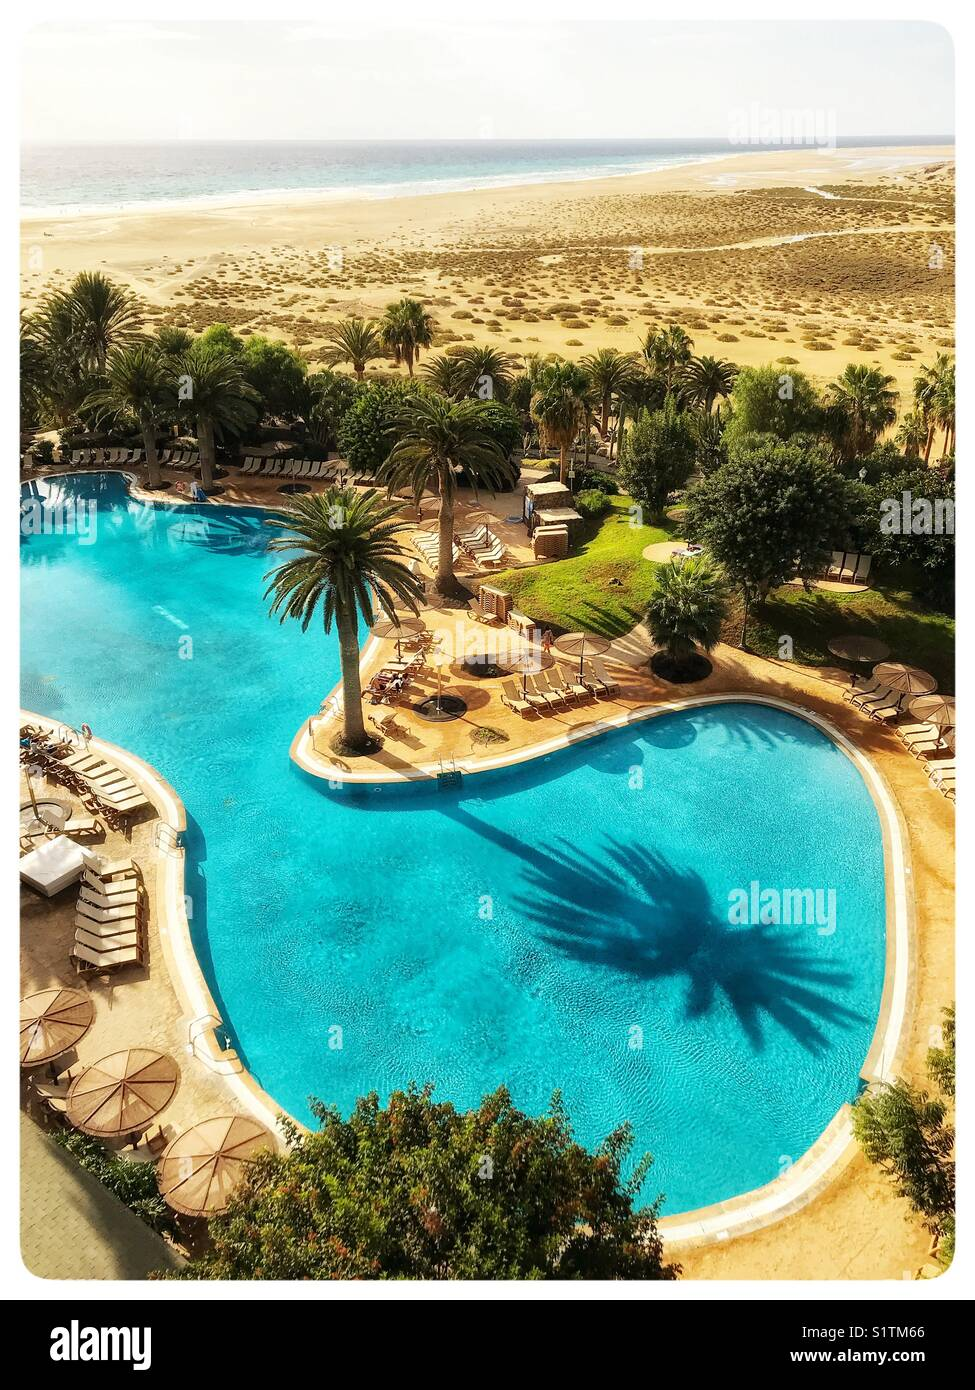 An aerial view of a beautiful shaped swimming pool surrounded by trees in Fuerteventura, Spain. - Stock Image